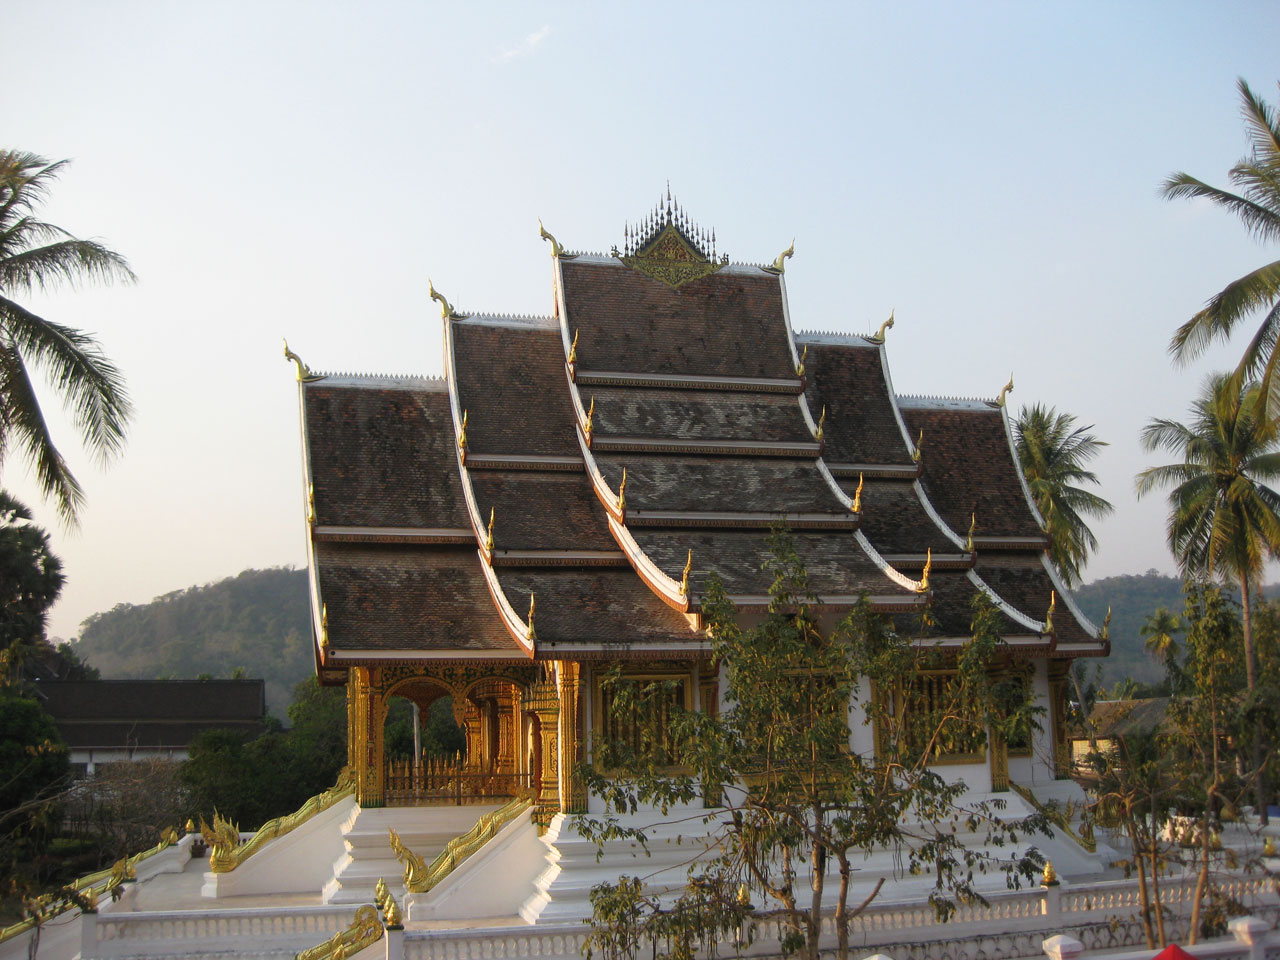 The Royal Palace, Luang Prabang, Laos